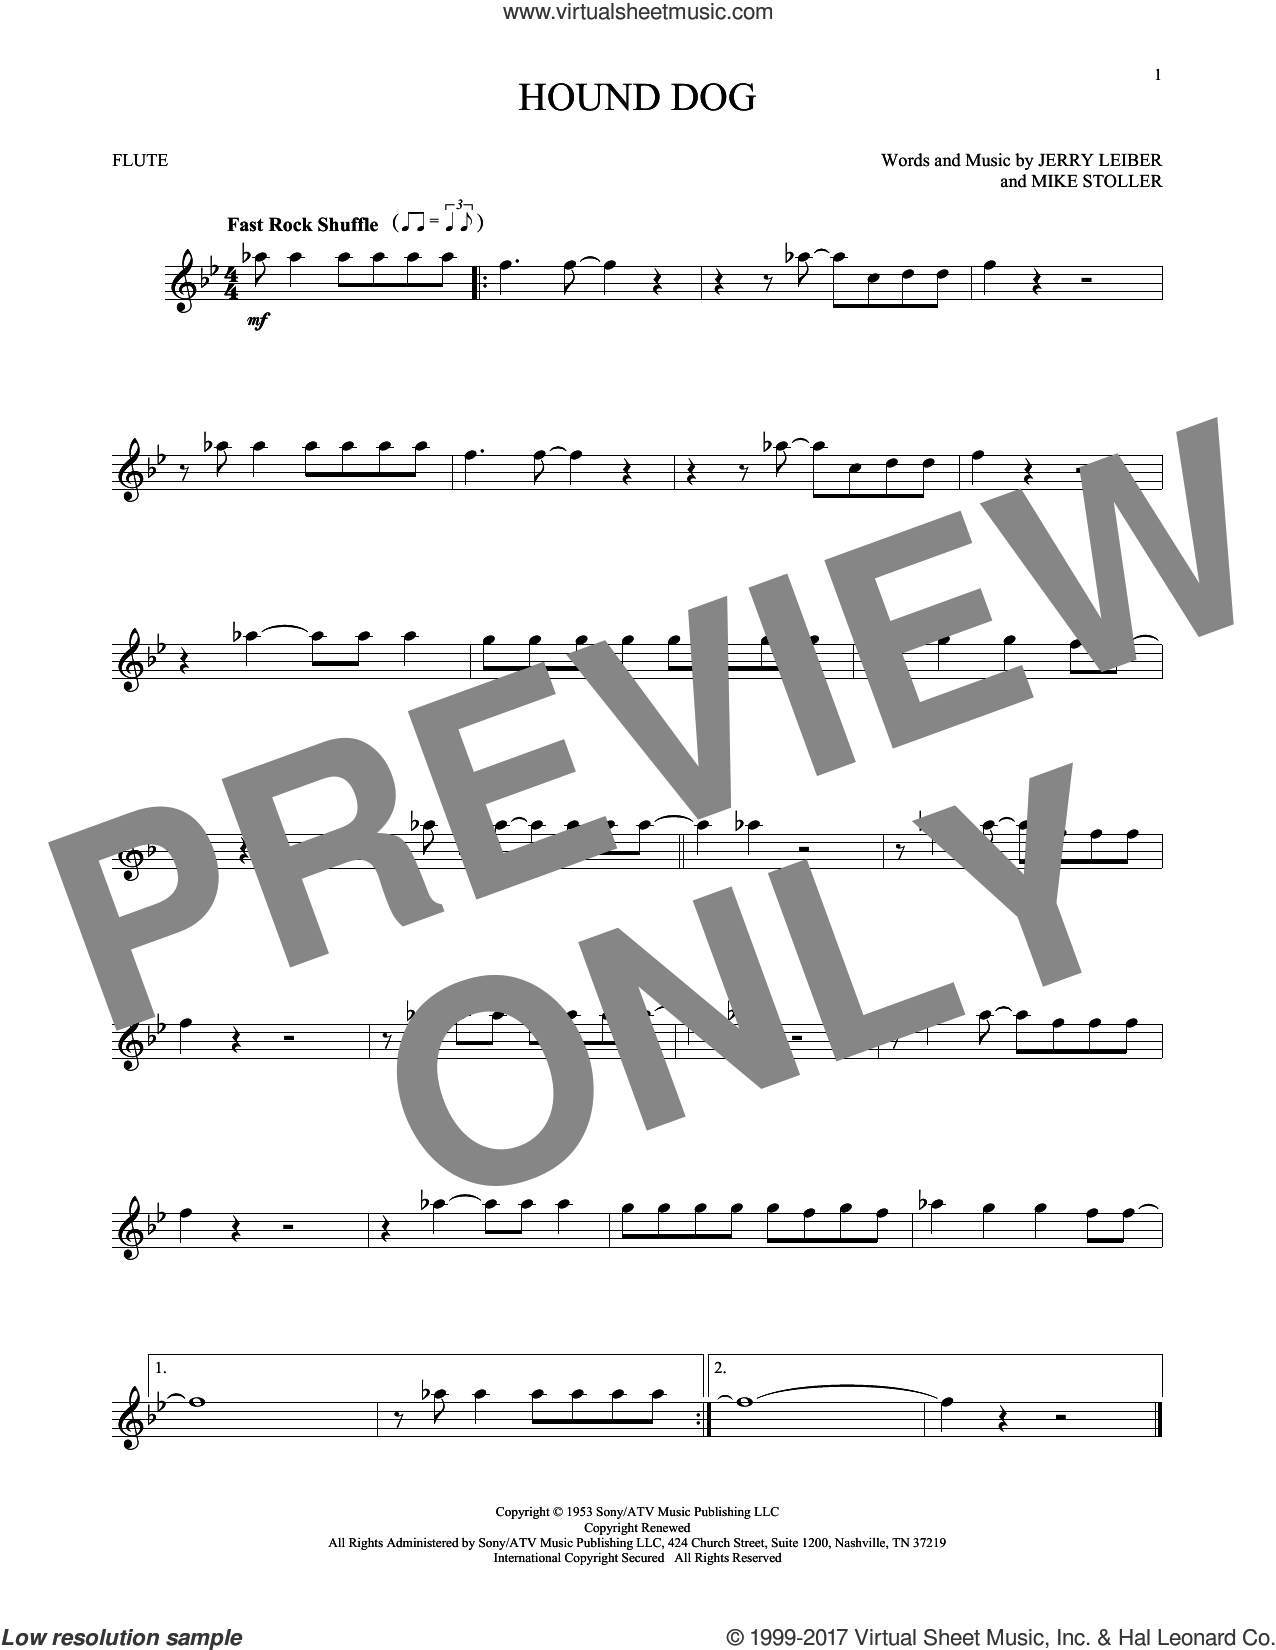 Hound Dog sheet music for flute solo by Elvis Presley, Jerry Leiber and Mike Stoller, intermediate skill level